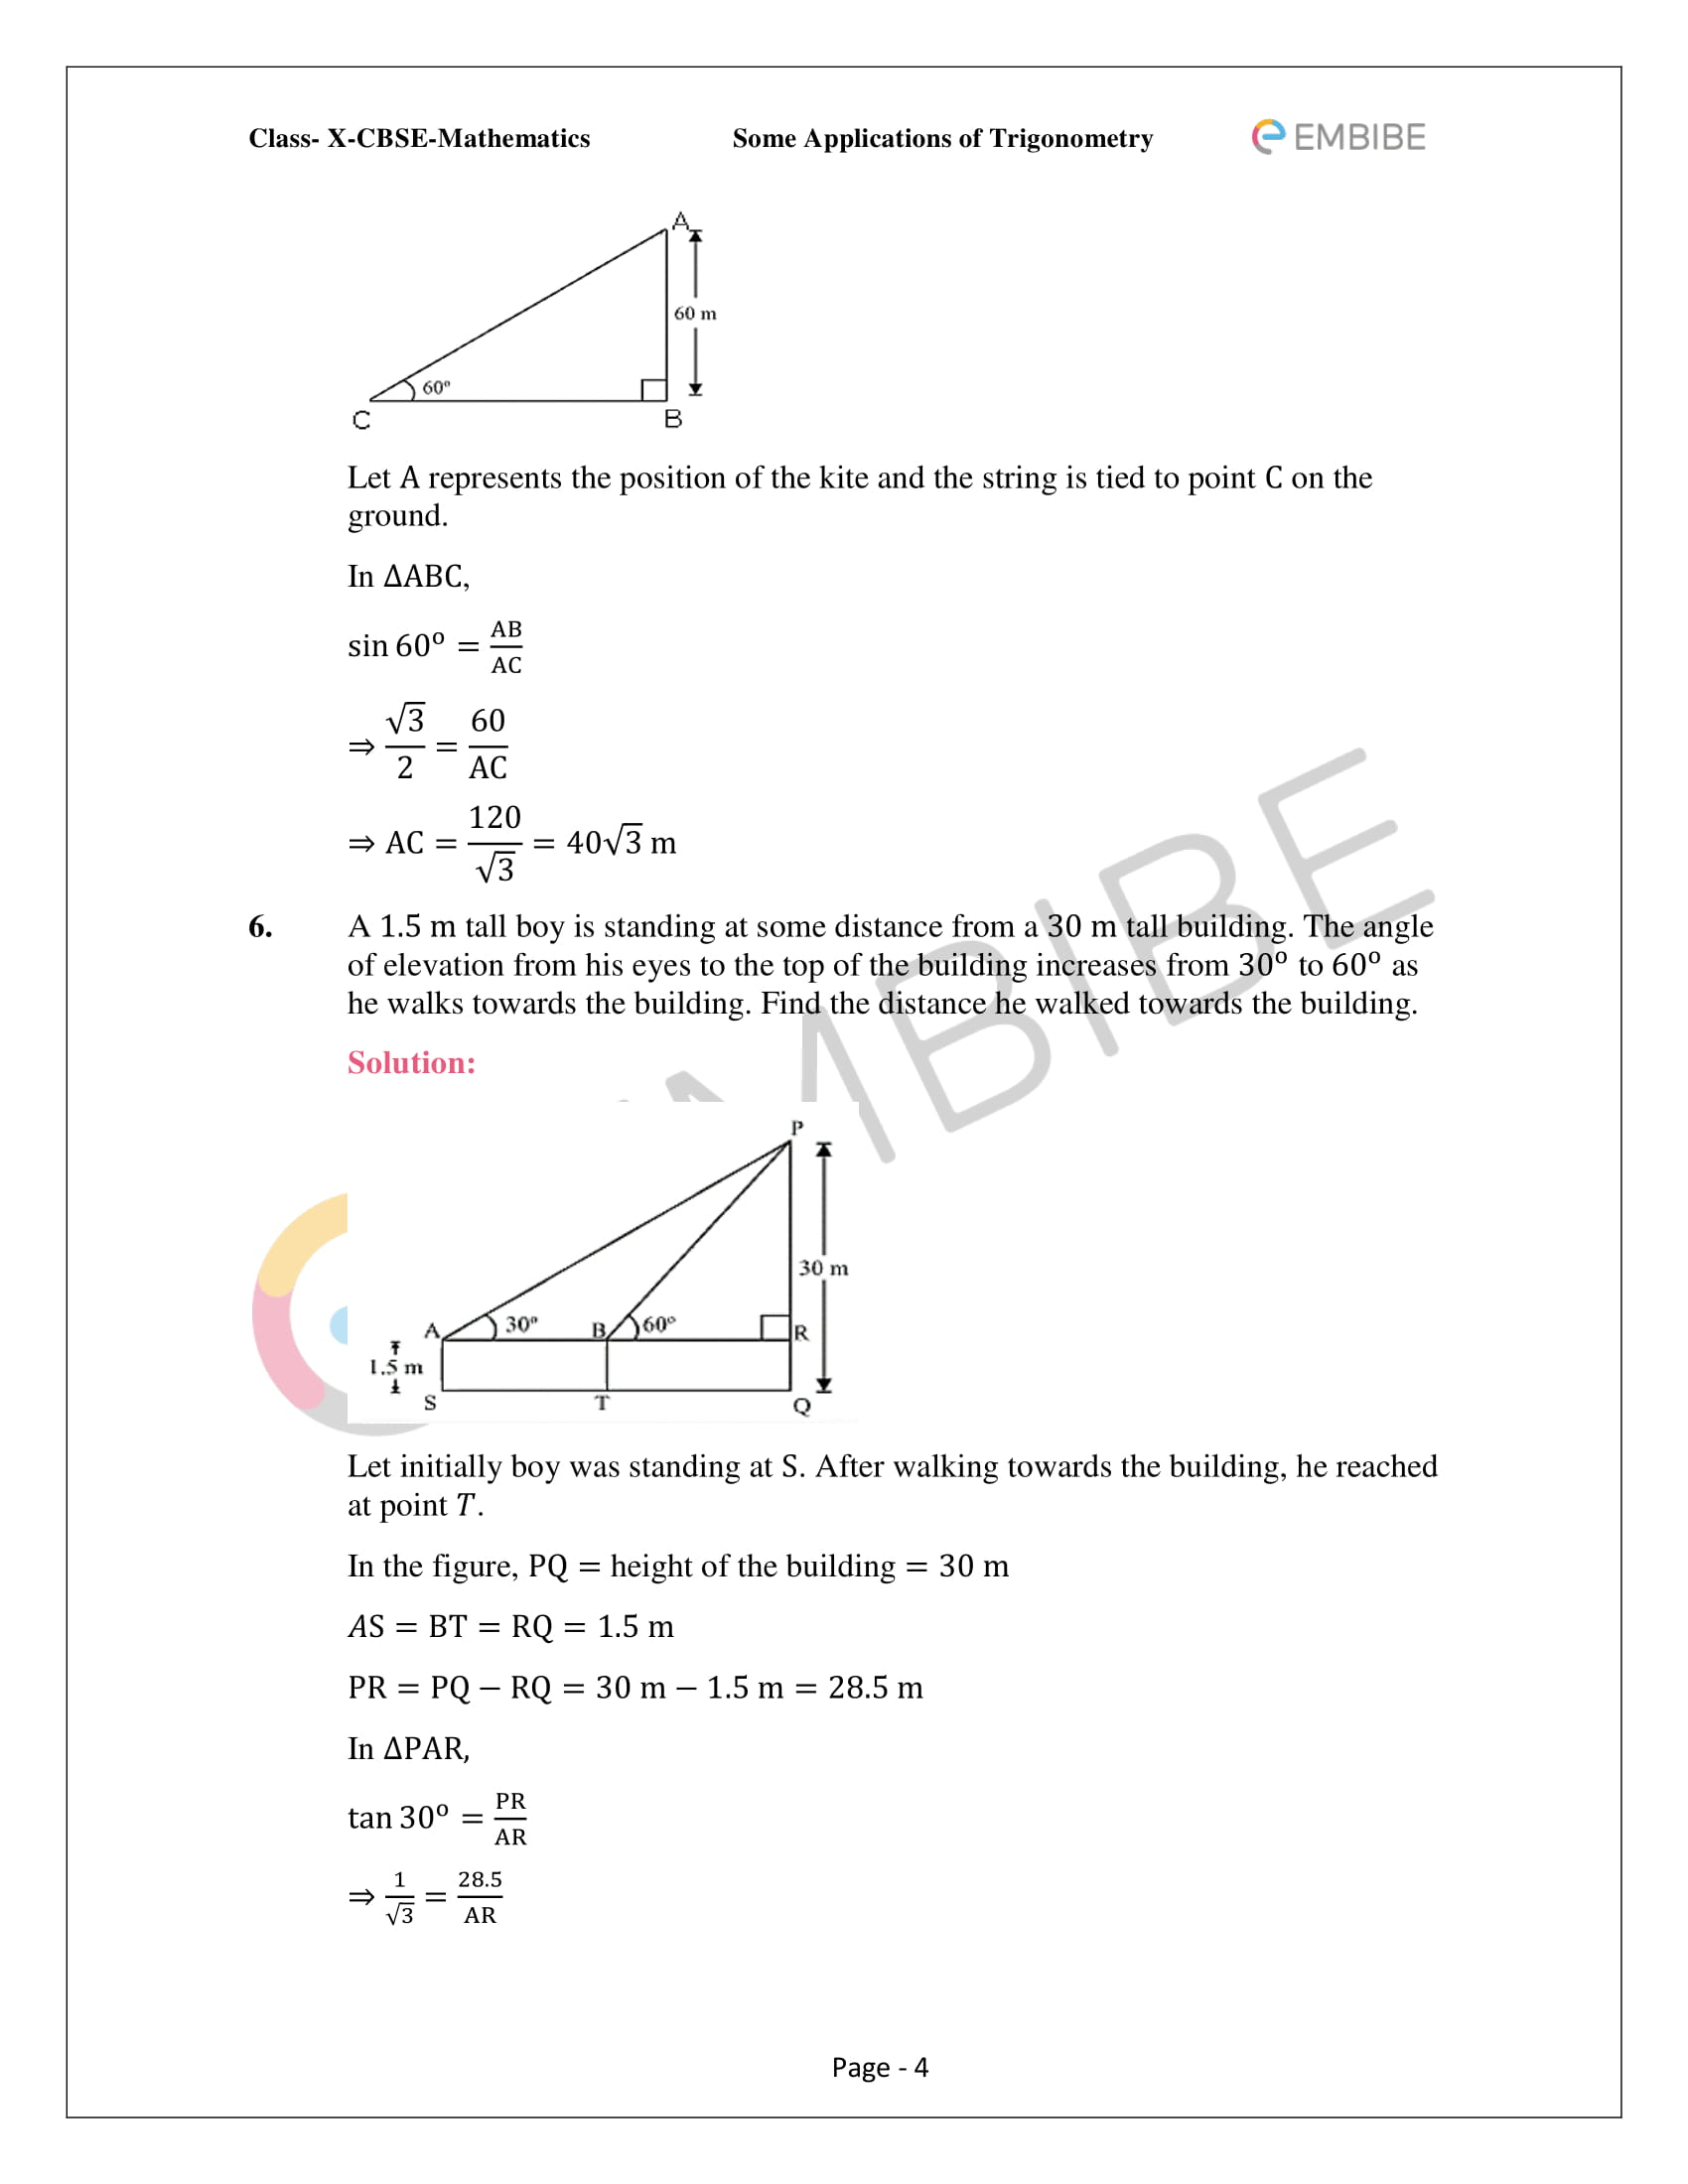 CBSE NCERT Solutions For Class 10 Maths Chapter 9 –Introduction To Trigonometry - 4